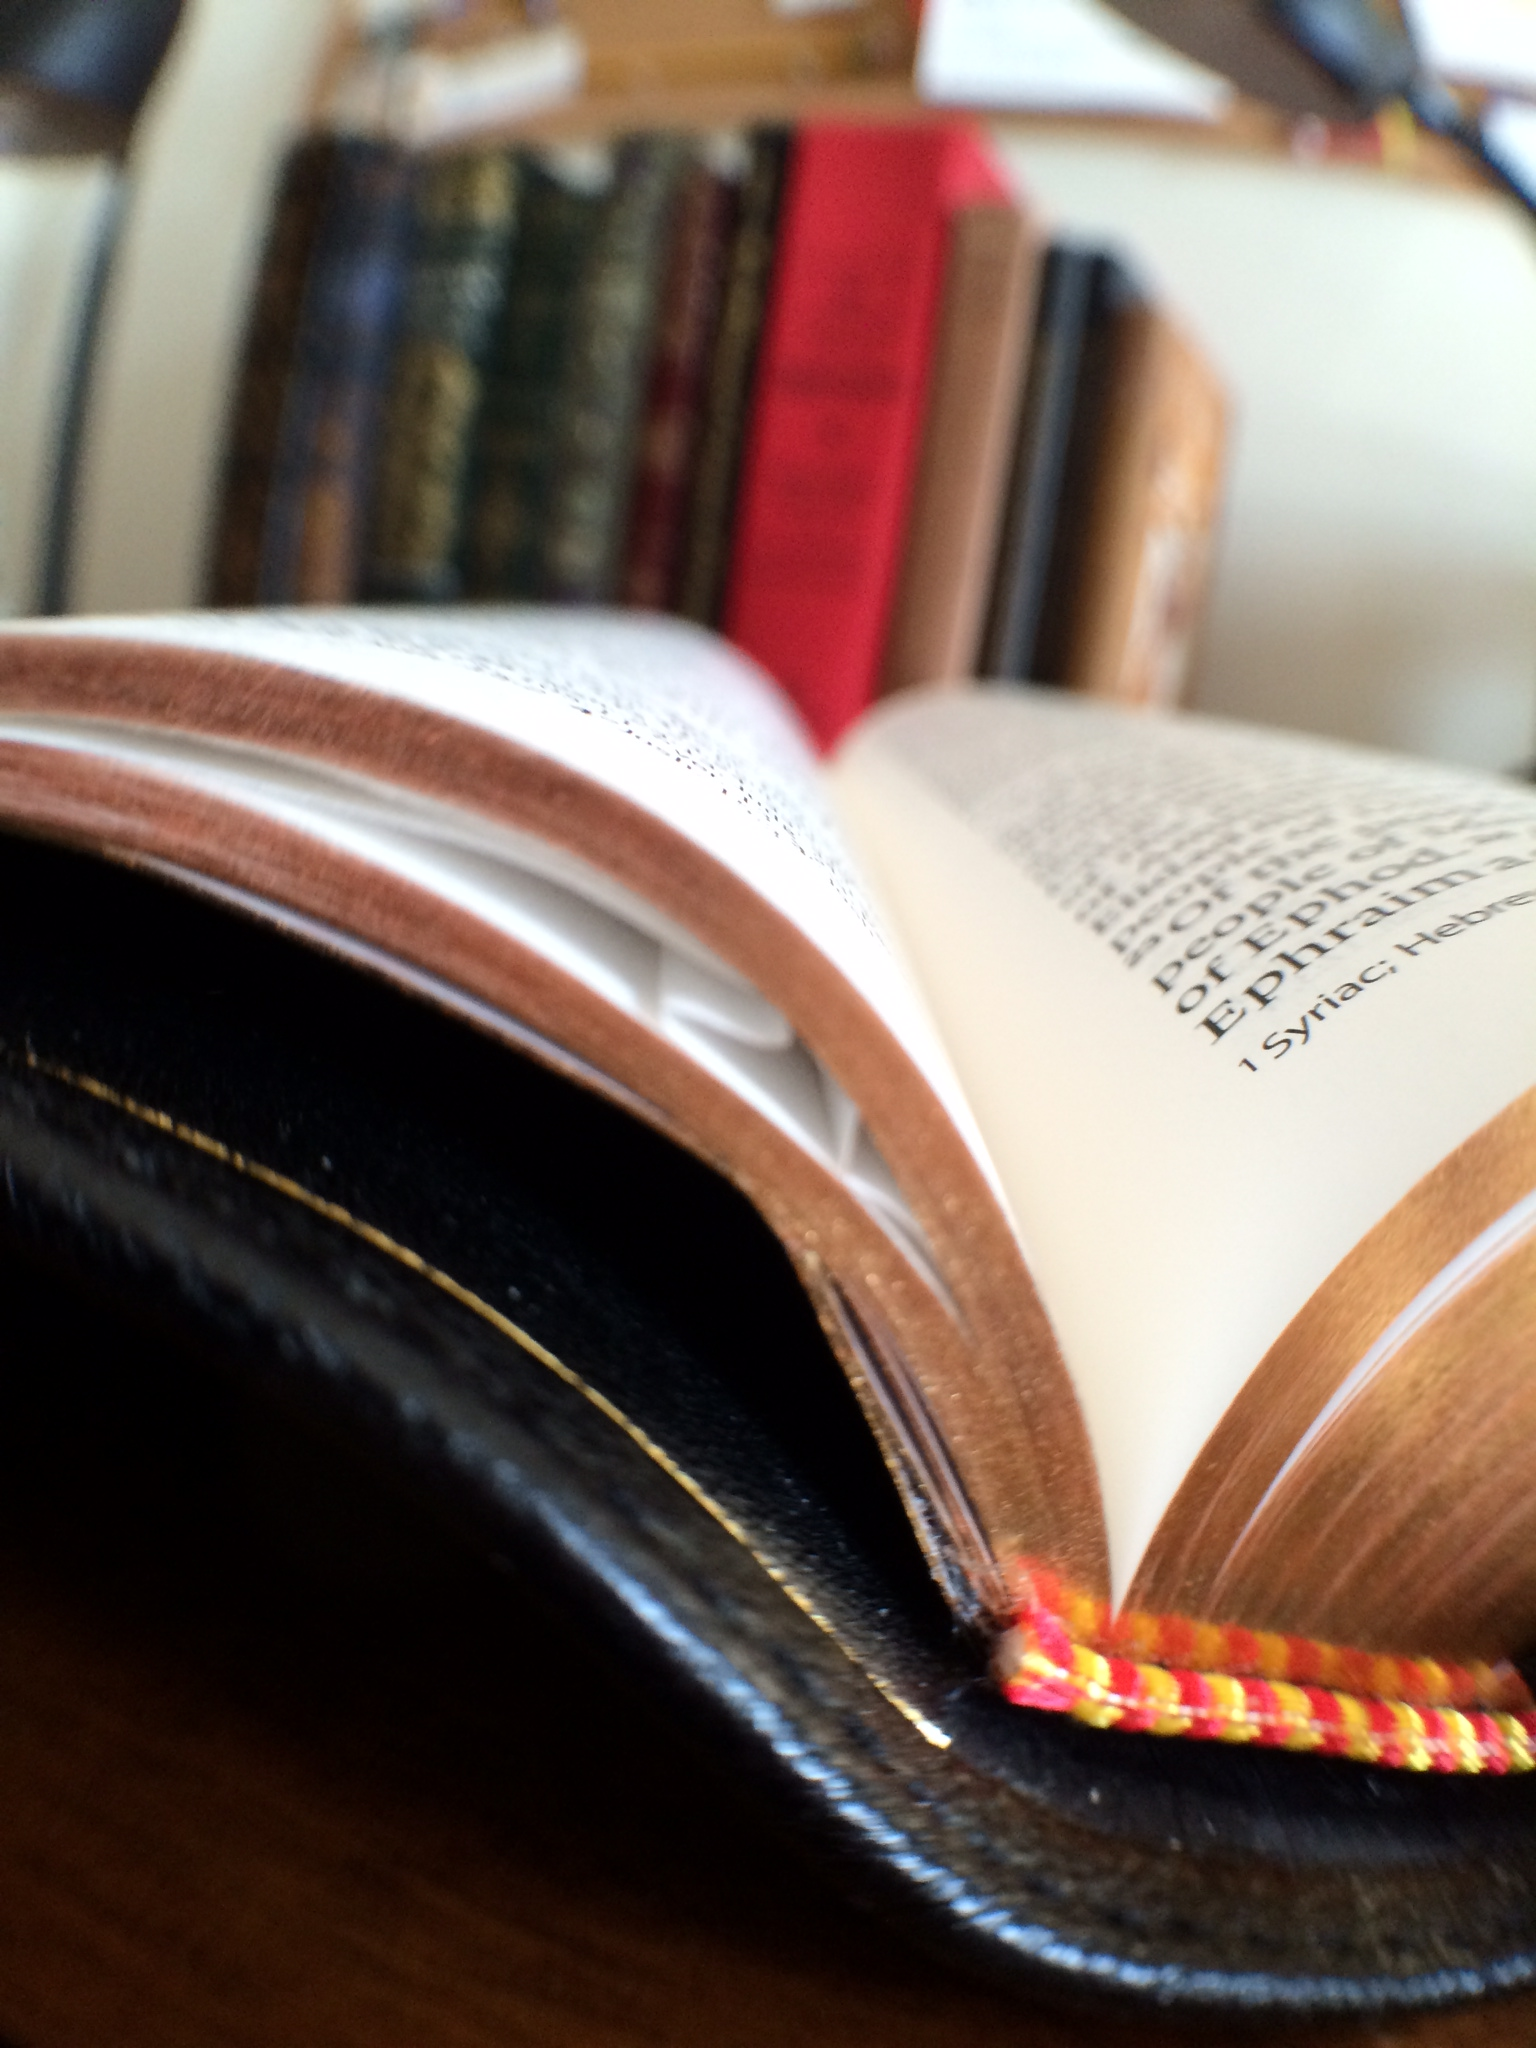 Because the pages are thin, this might happen from time to time. Just be gentle and make sure all of the pages are laying flat before storing your Bible.